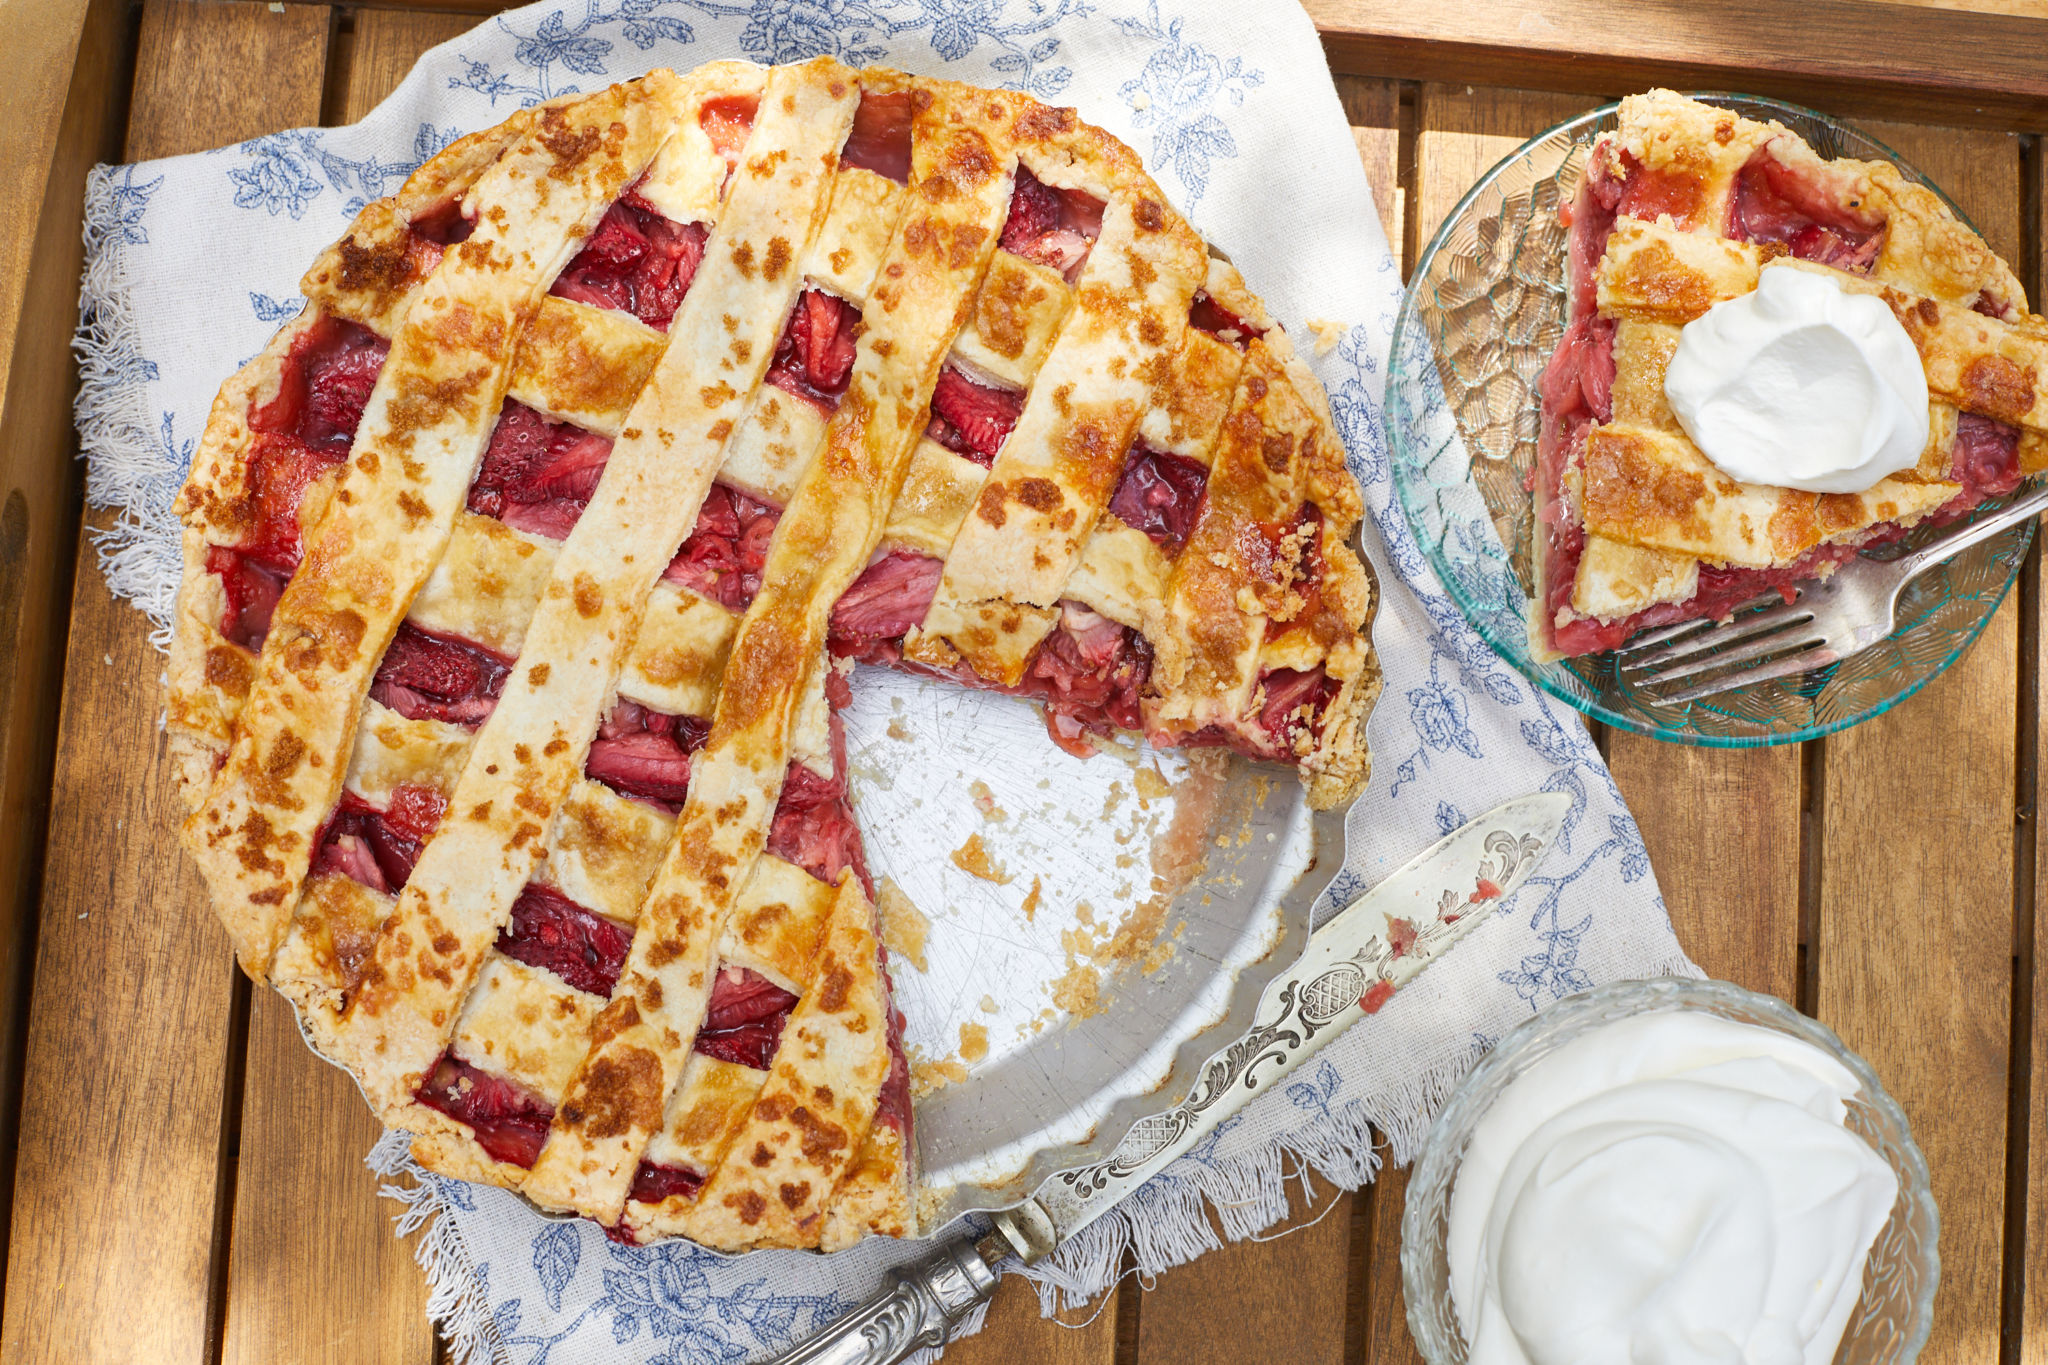 A strawberry pie with a piece removed.